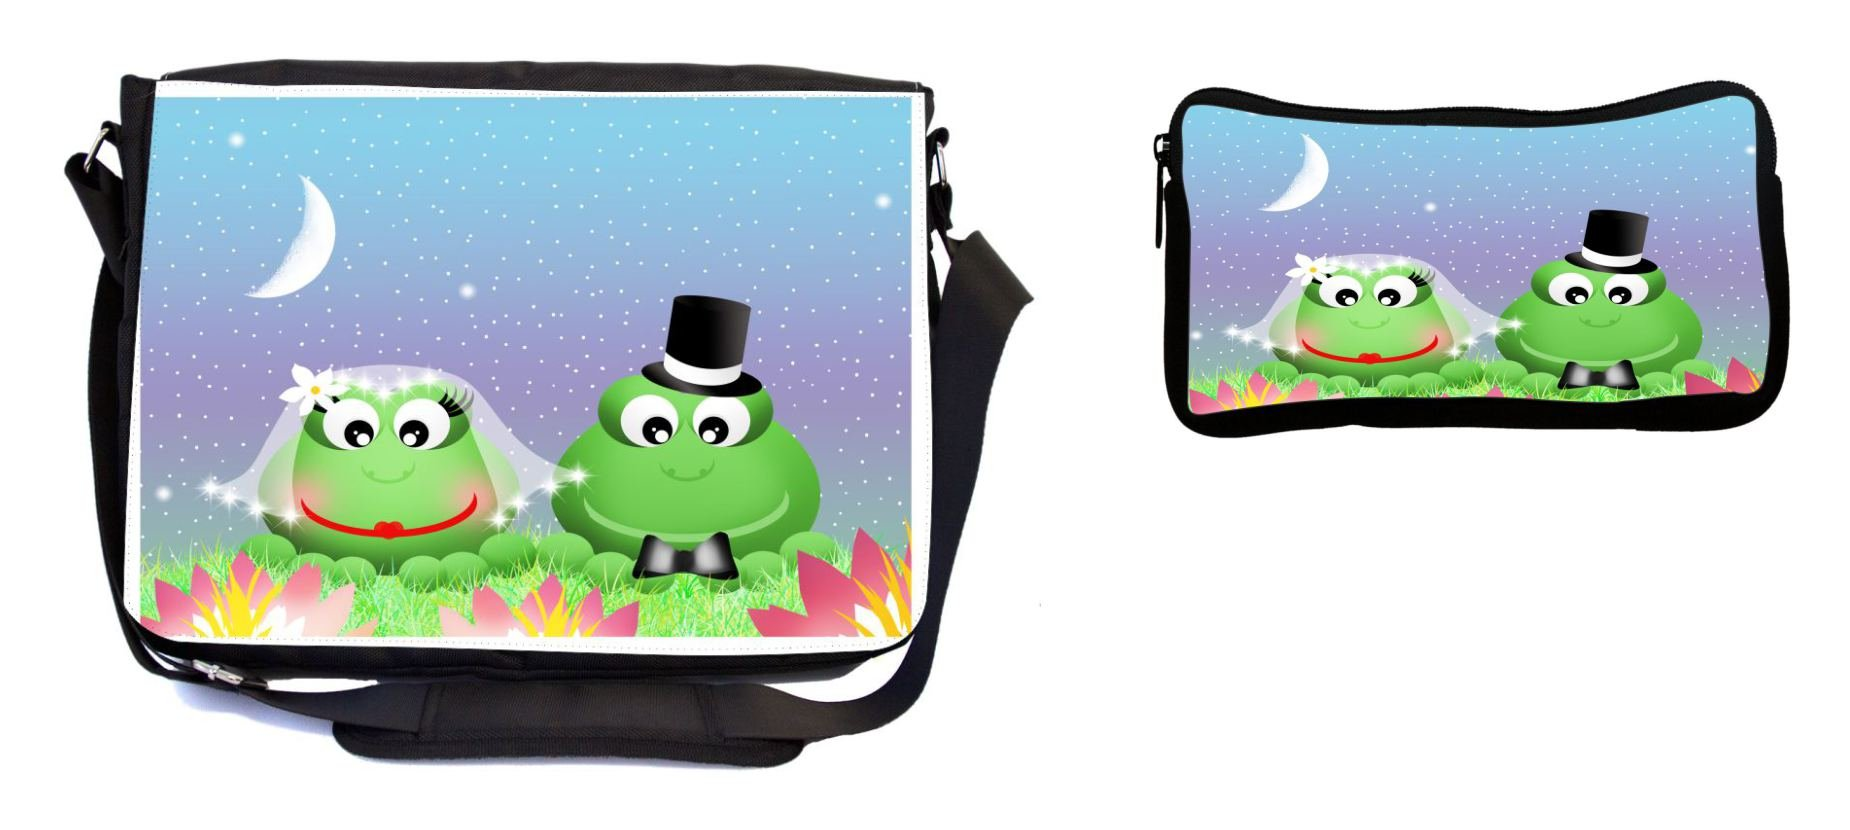 Rikki Knight Frogs in Love Wedding Illustration Design Multifunction Messenger Bag - School Bag - Laptop Bag - with Padded Insert for School or Work - Includes Pencil Case